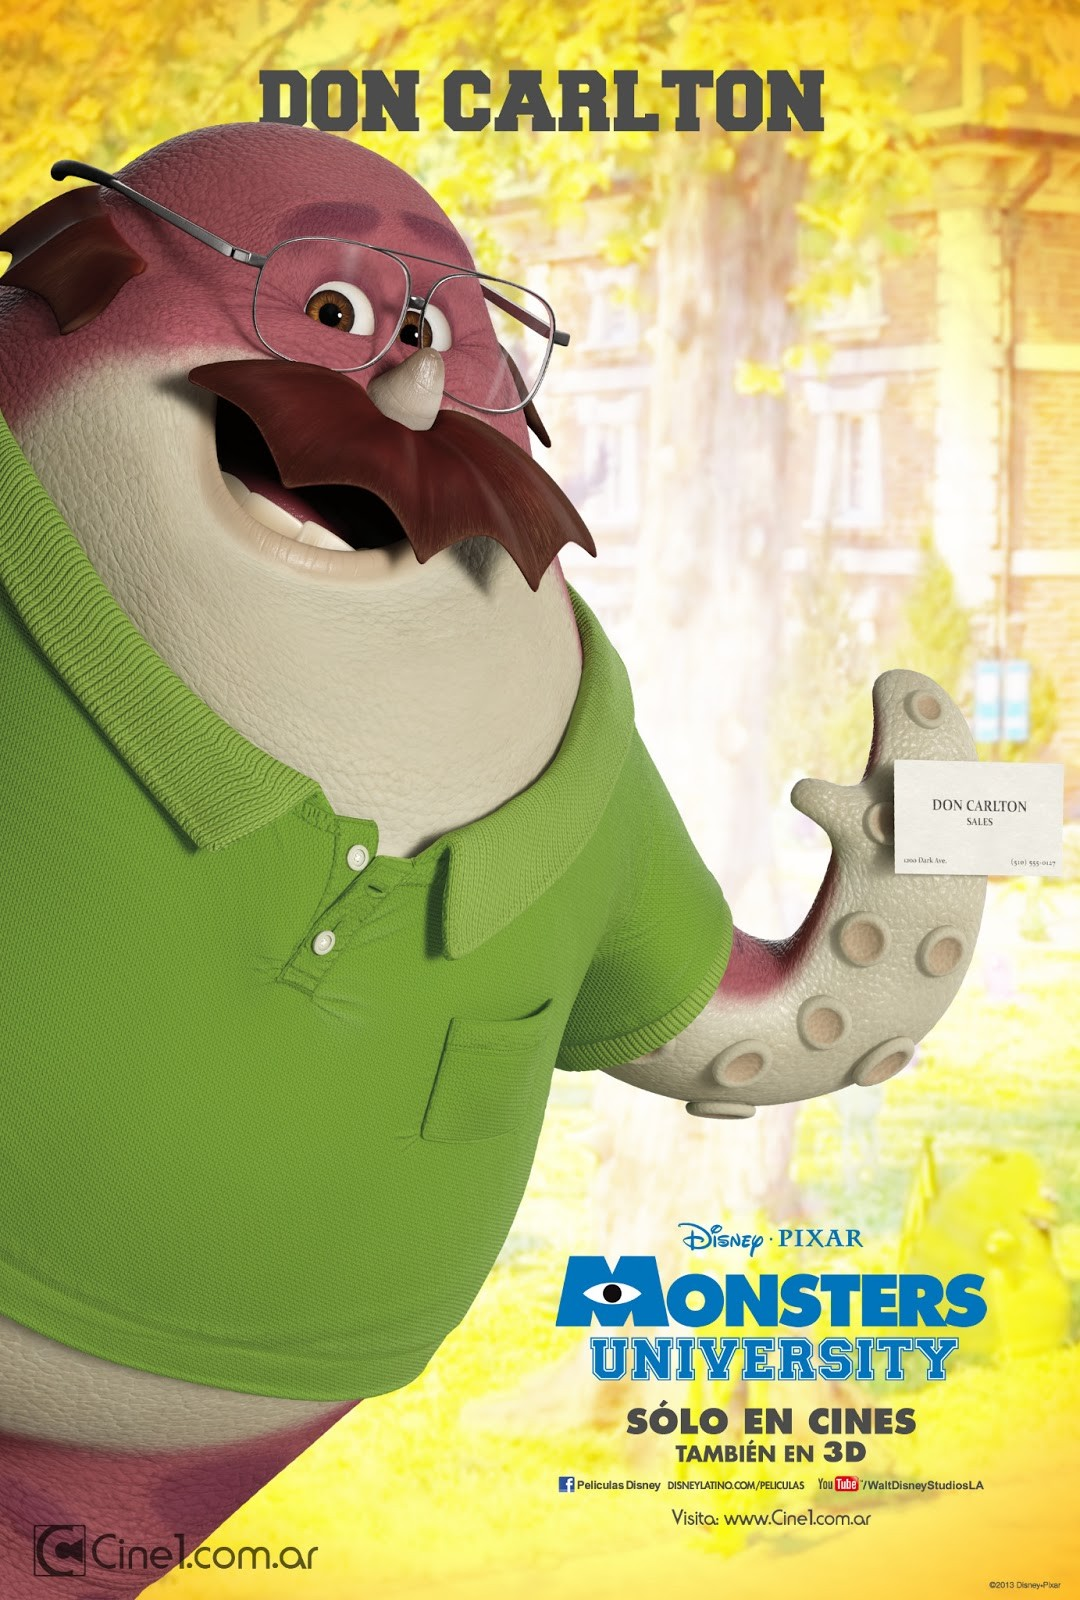 Roz Monsters Inc Quotes 94625 | LINEBLOG